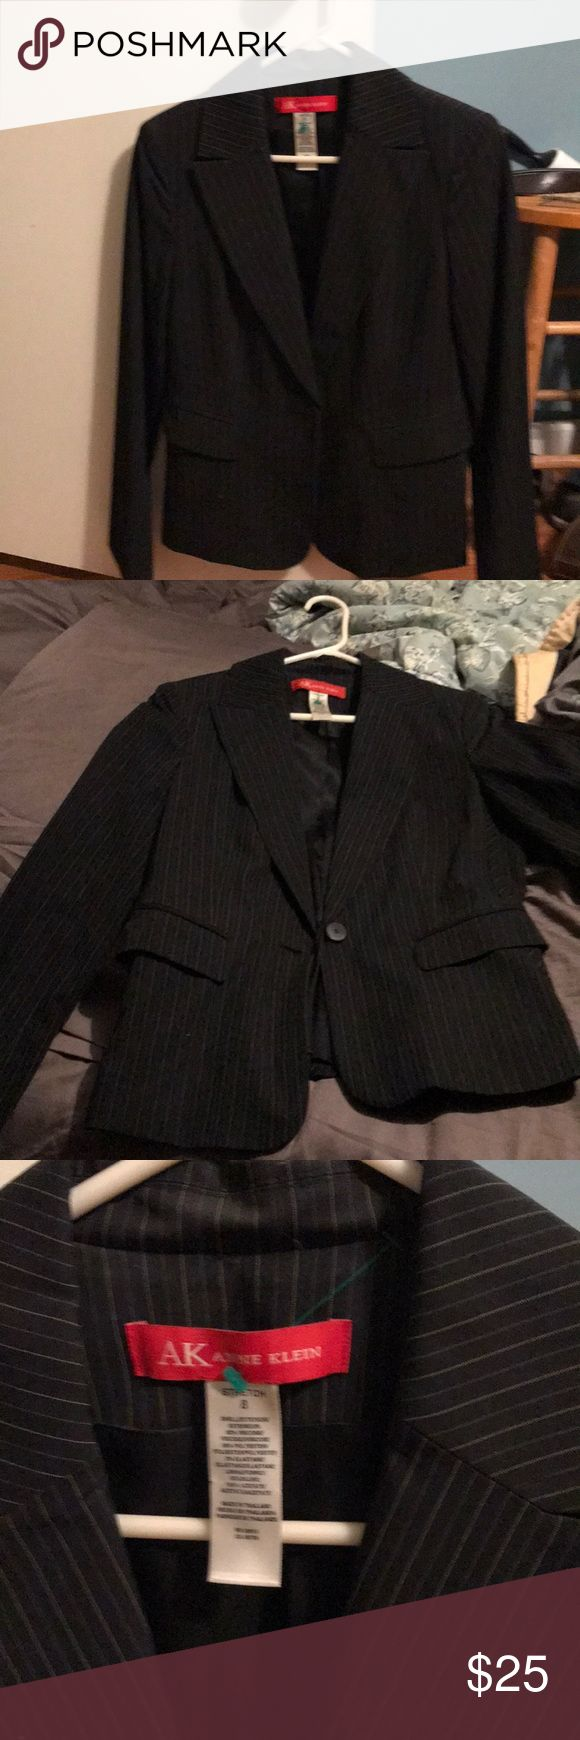 Anne Klein size 8 women's business jacket No idea where this came from but ive never worn it once. It's cute my work just isn't this business dress code wise. Time to detach! Anne Klein Jackets & Coats Blazers